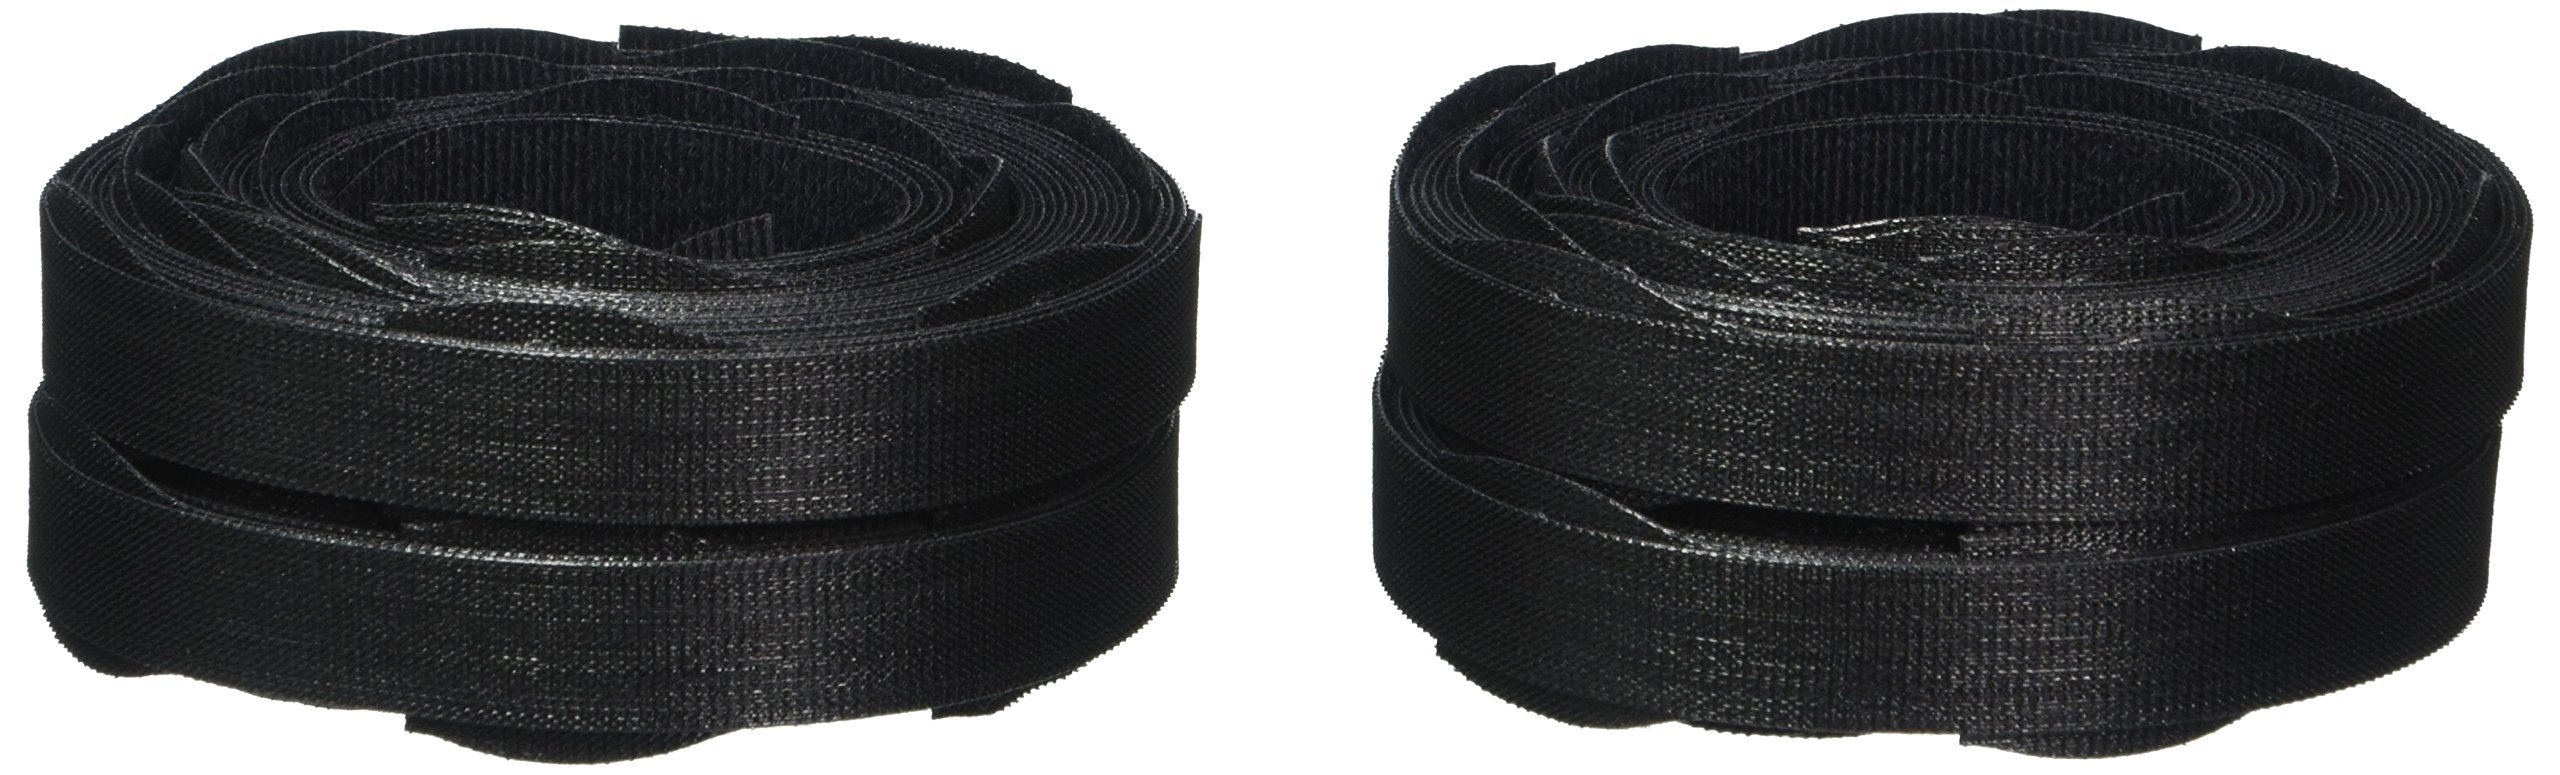 Velcro Reusable Self-Gripping Cable Ties, 0.5 Inches x 8 Inches Long, Black, 100 Ties per Pack (91140) 6 Pack